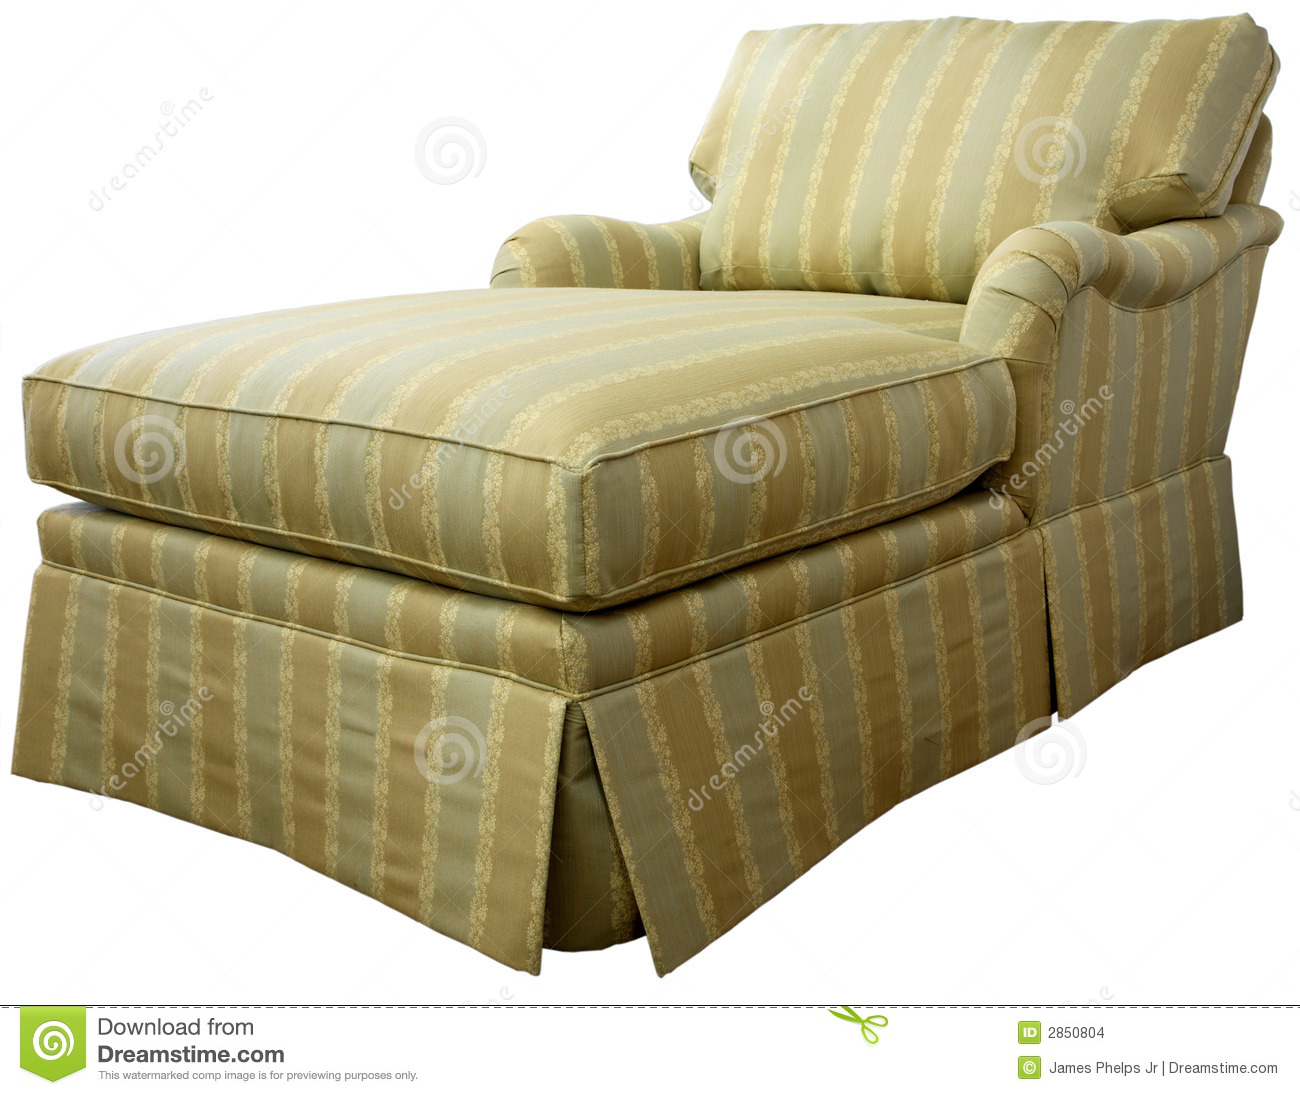 Chaise Lounge Sofa Stock Photo Image Of Furnishings Furniture 2850804